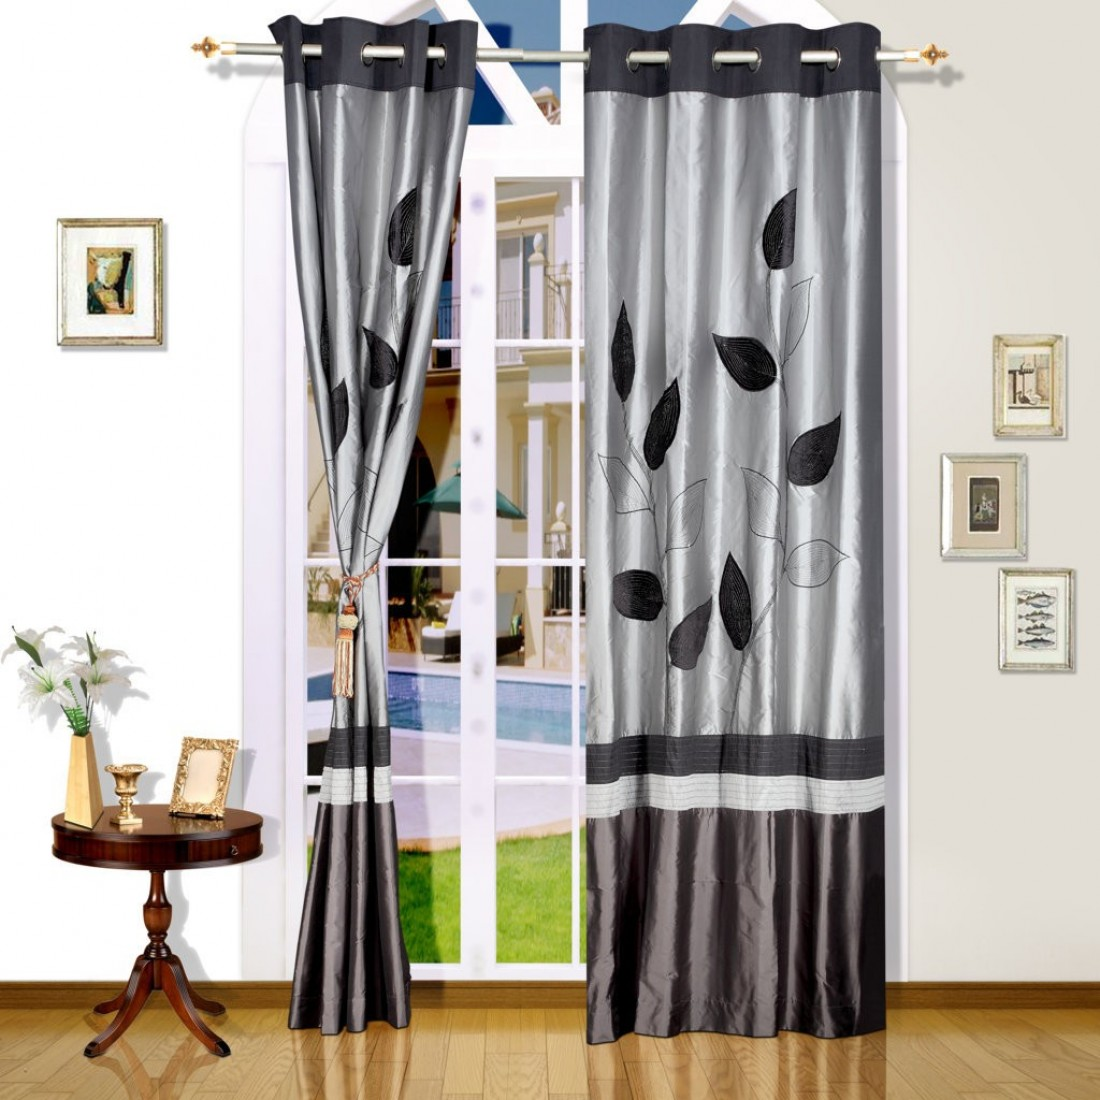 adah-living-door-curtains-322-1100x1100